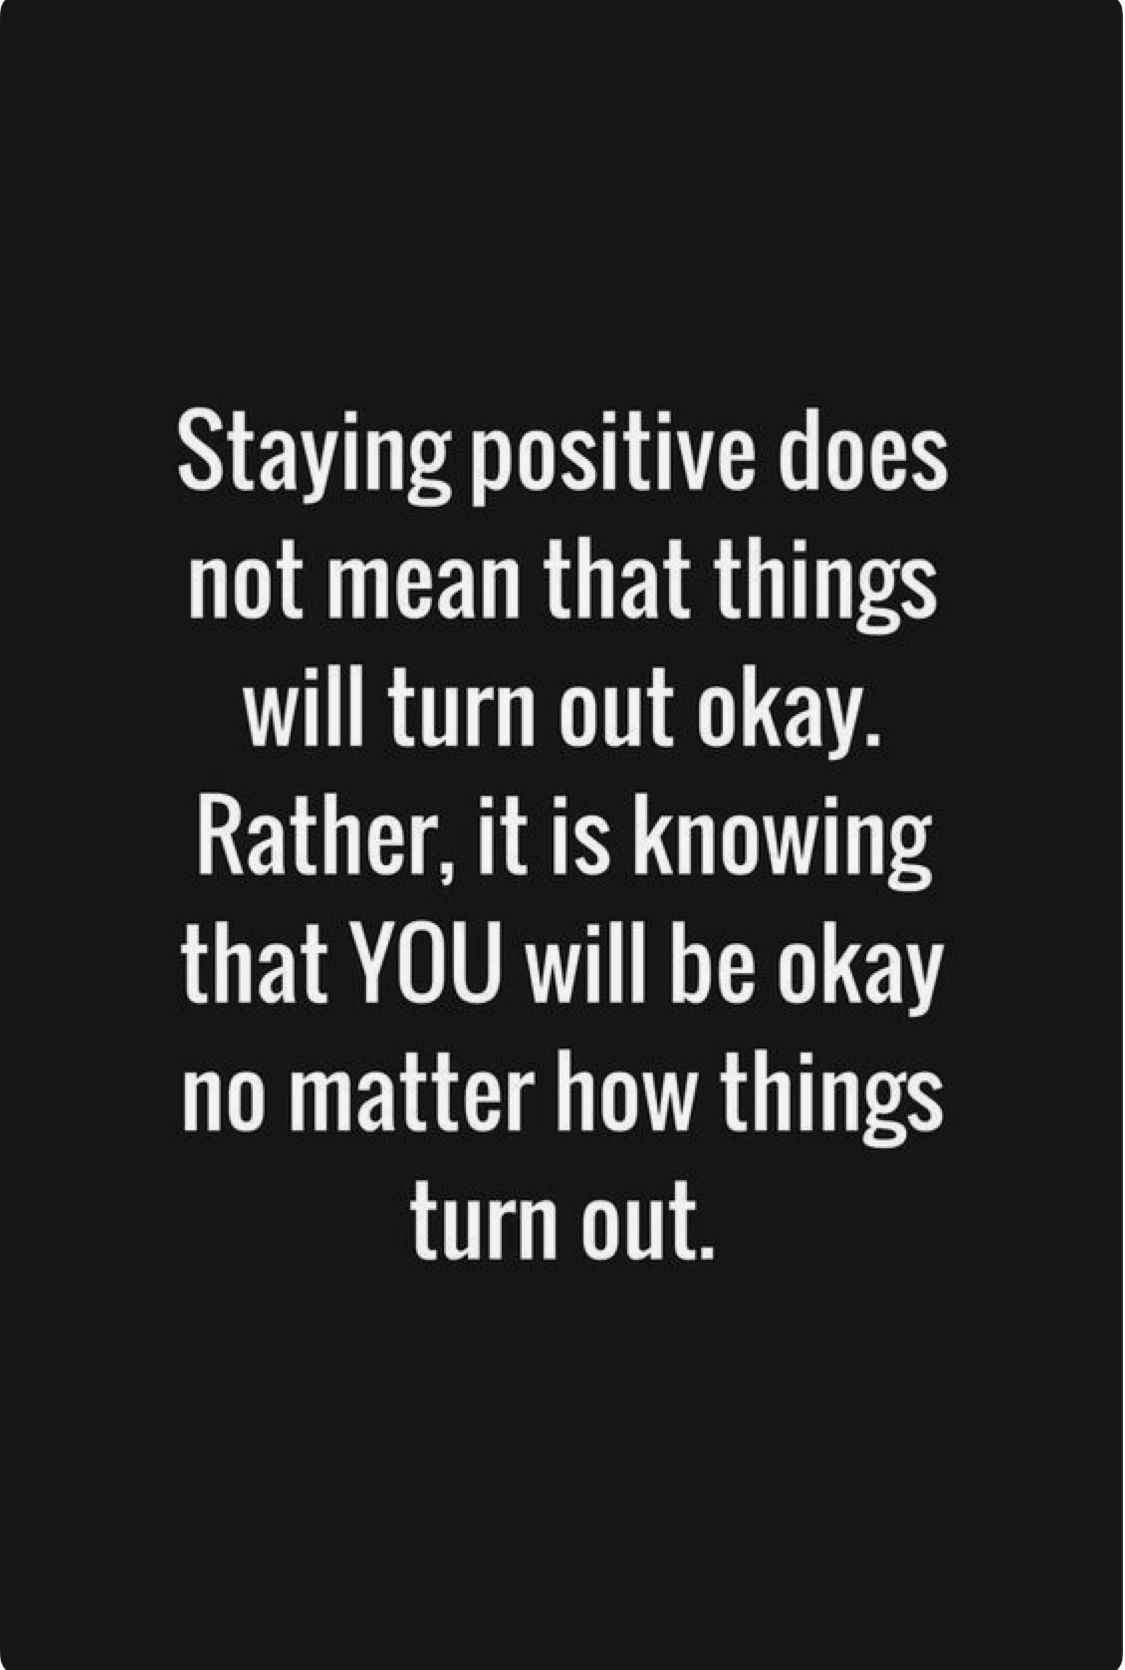 Keep moving forward with positivity!